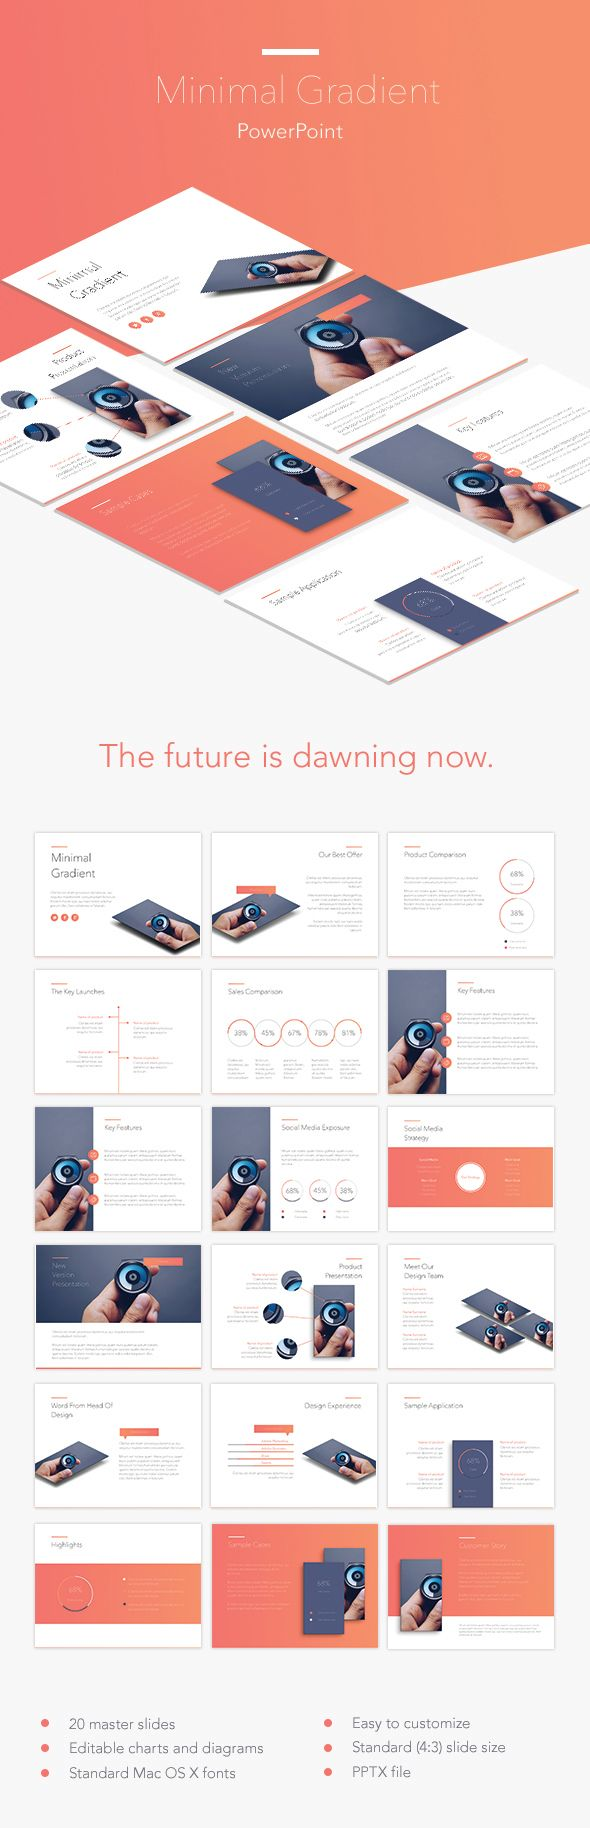 228 best powerpoint presentation templates images on pinterest minimal gradient powerpoint template alramifo Gallery